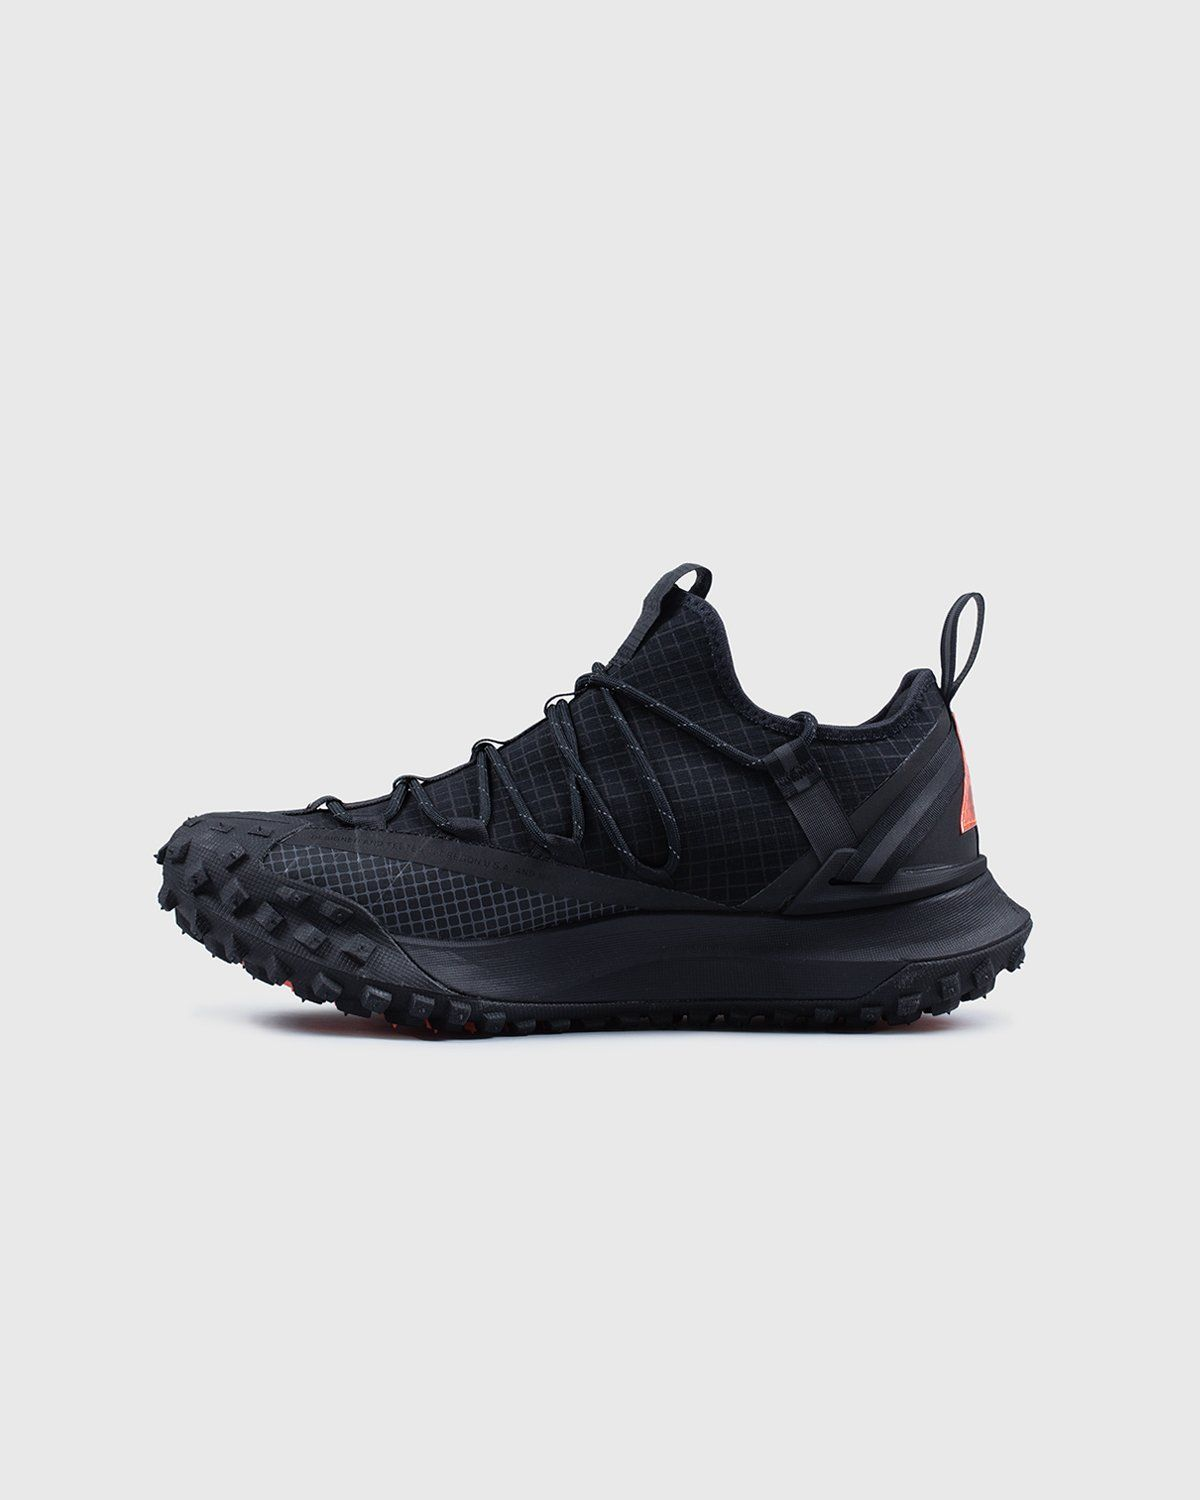 Nike ACG — Mountain Fly Low Anthracite - Image 4